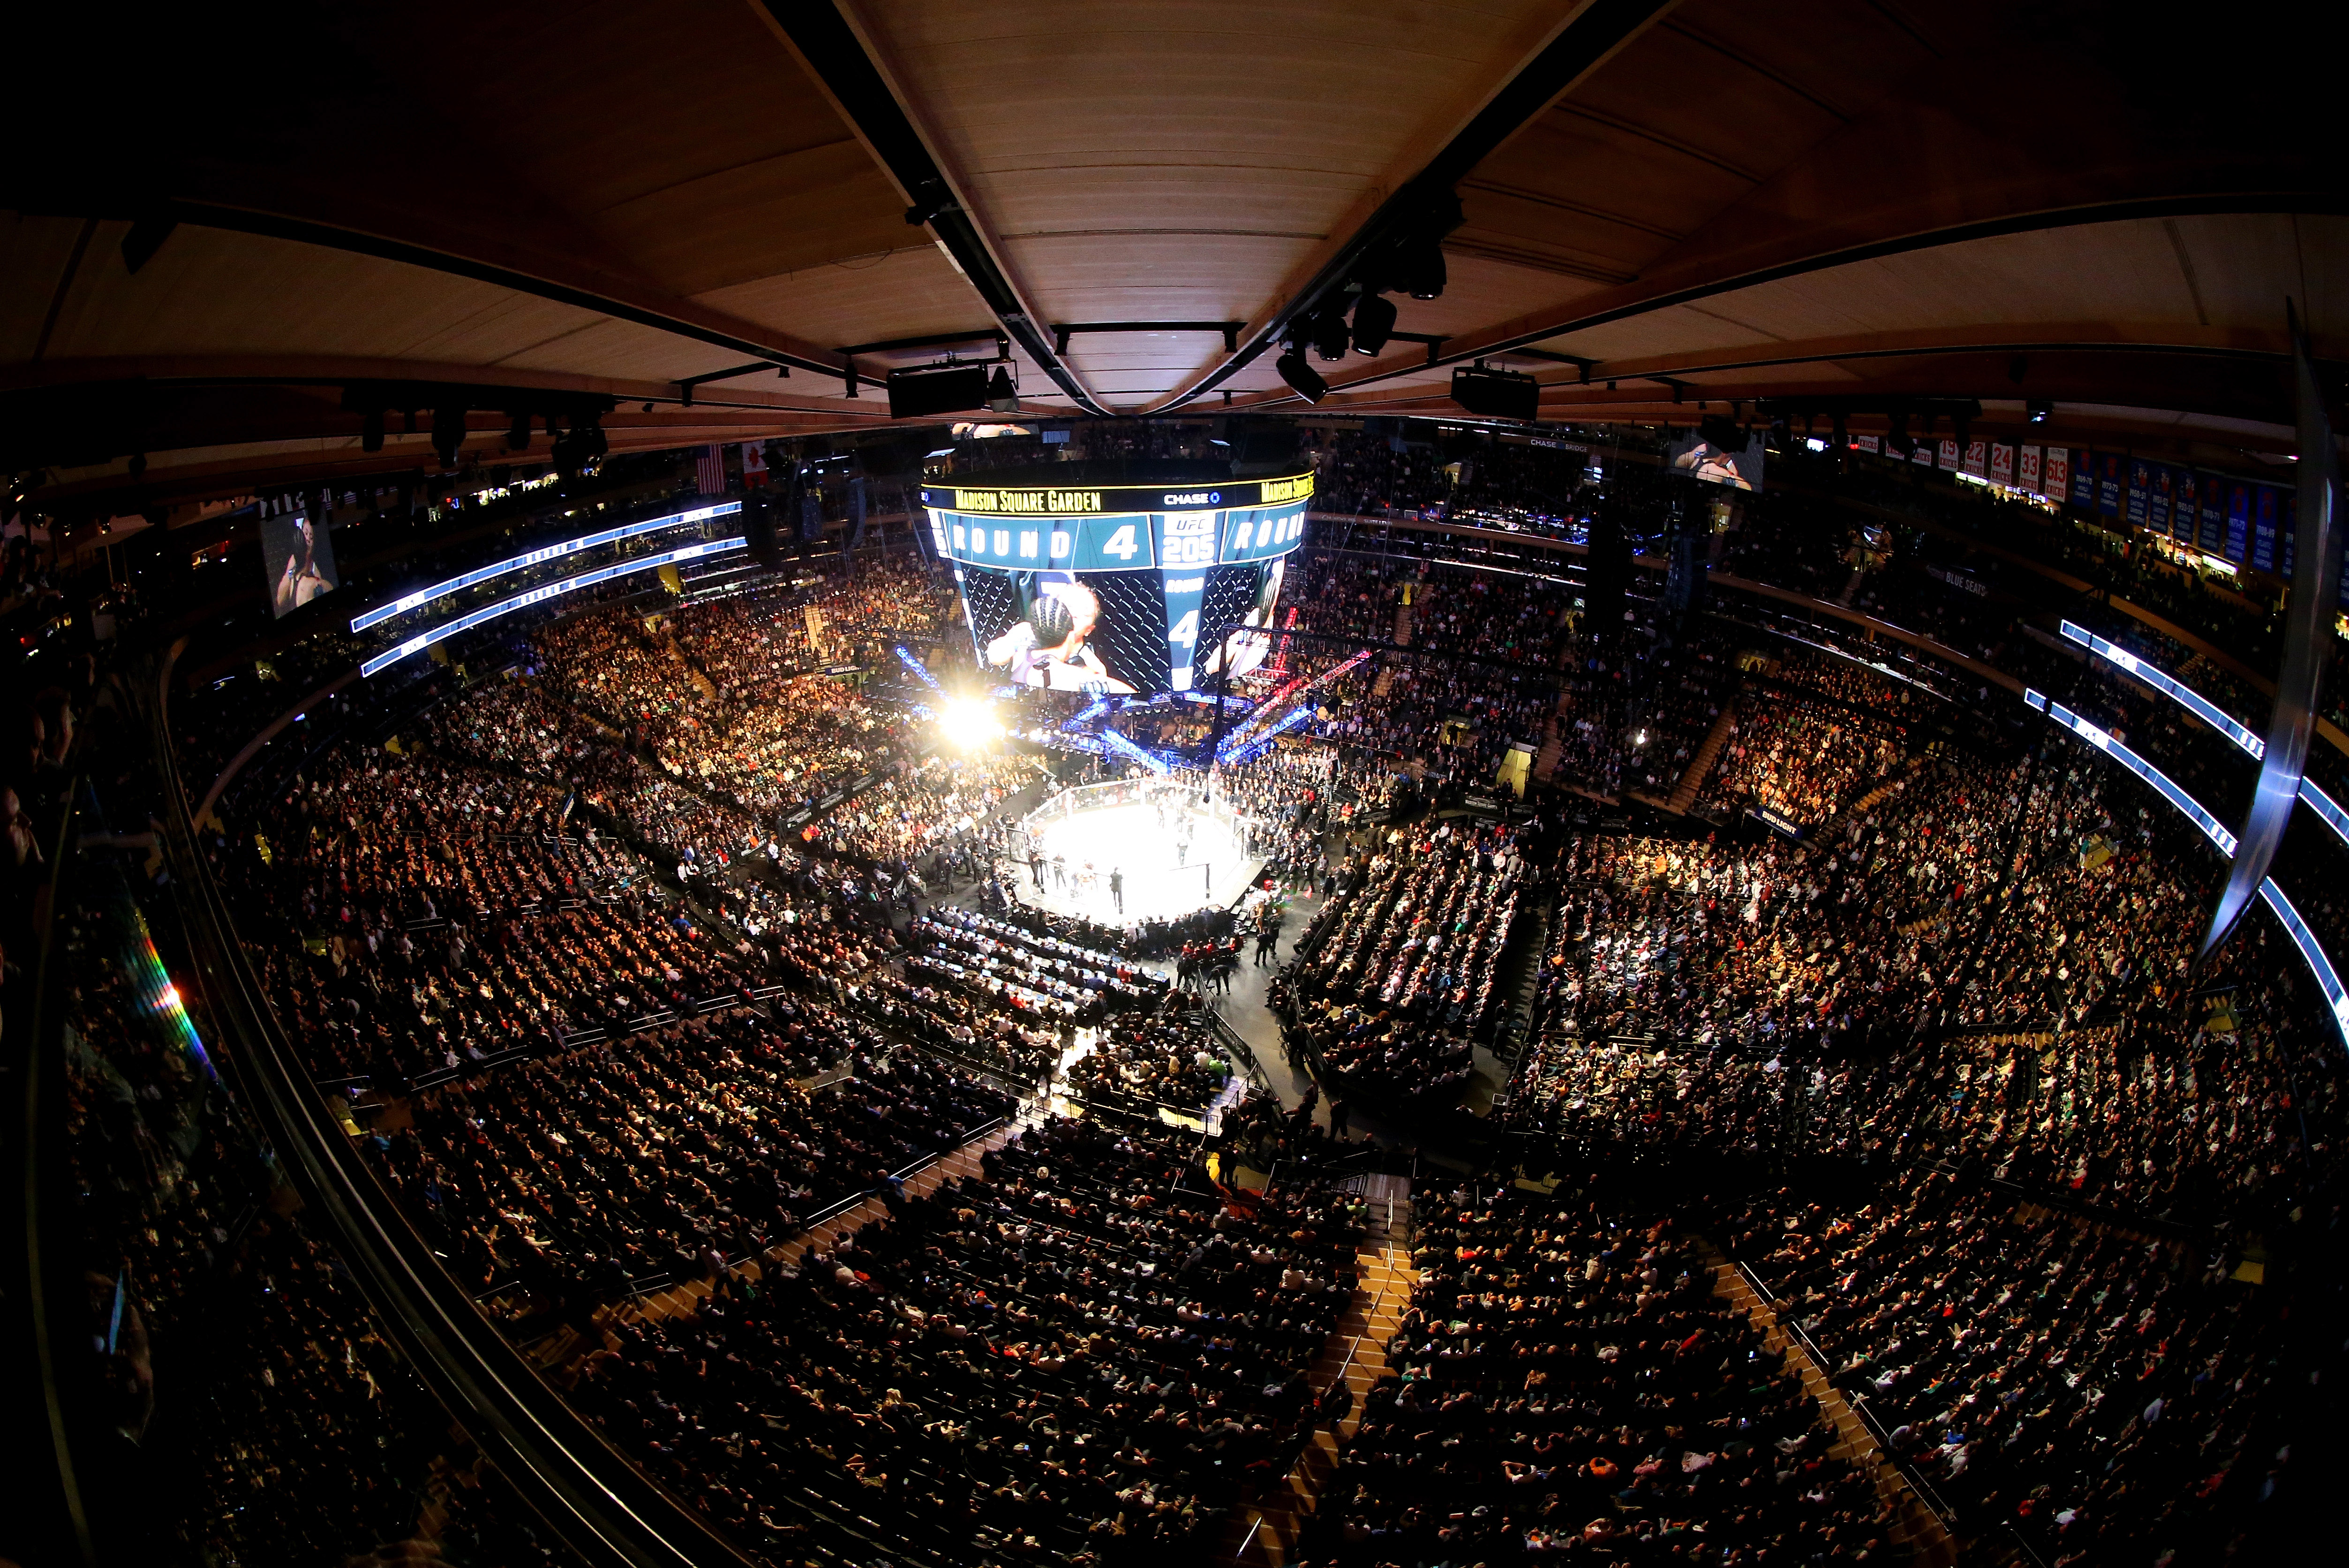 A general view of the octagon during the UFC 205 event at Madison Square Garden on November 12, 2016 in New York City. (Photo by Ed Mulholland/Zuffa LLC)